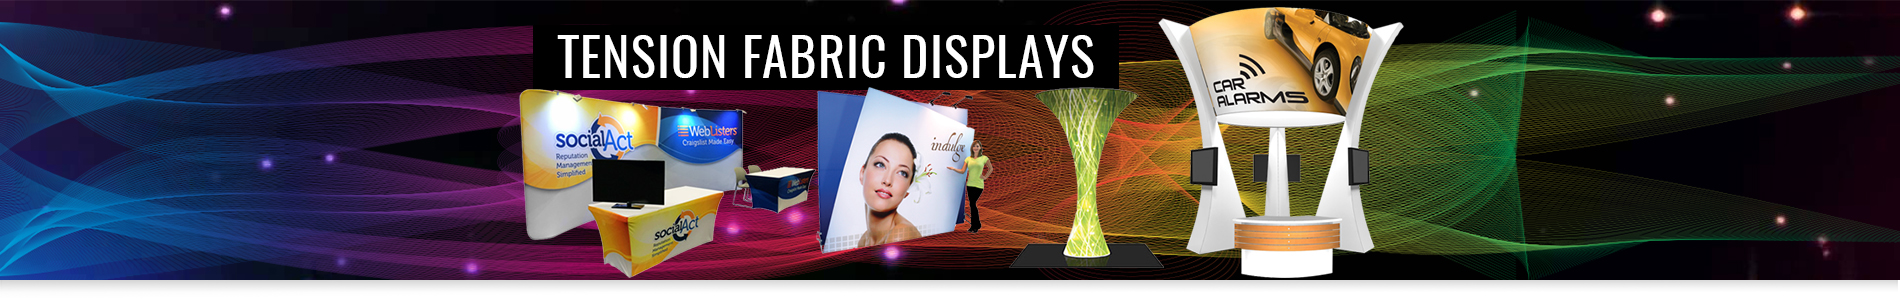 Tension Fabric Displays Backwall